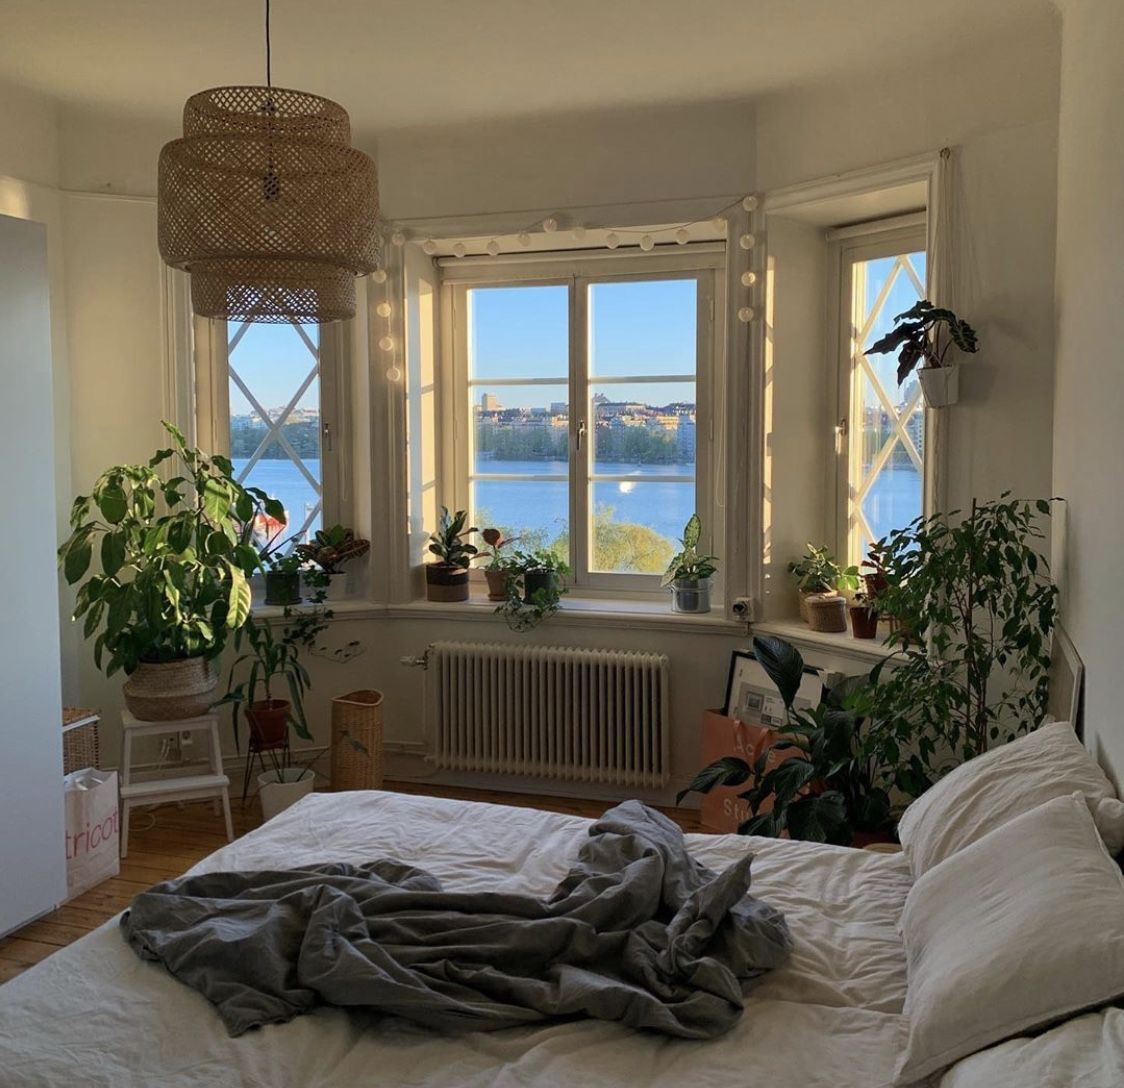 @brookepaigem in 2020 | Dream rooms, Home, Aesthetic rooms on Room Decor Paredes Aesthetic id=17869